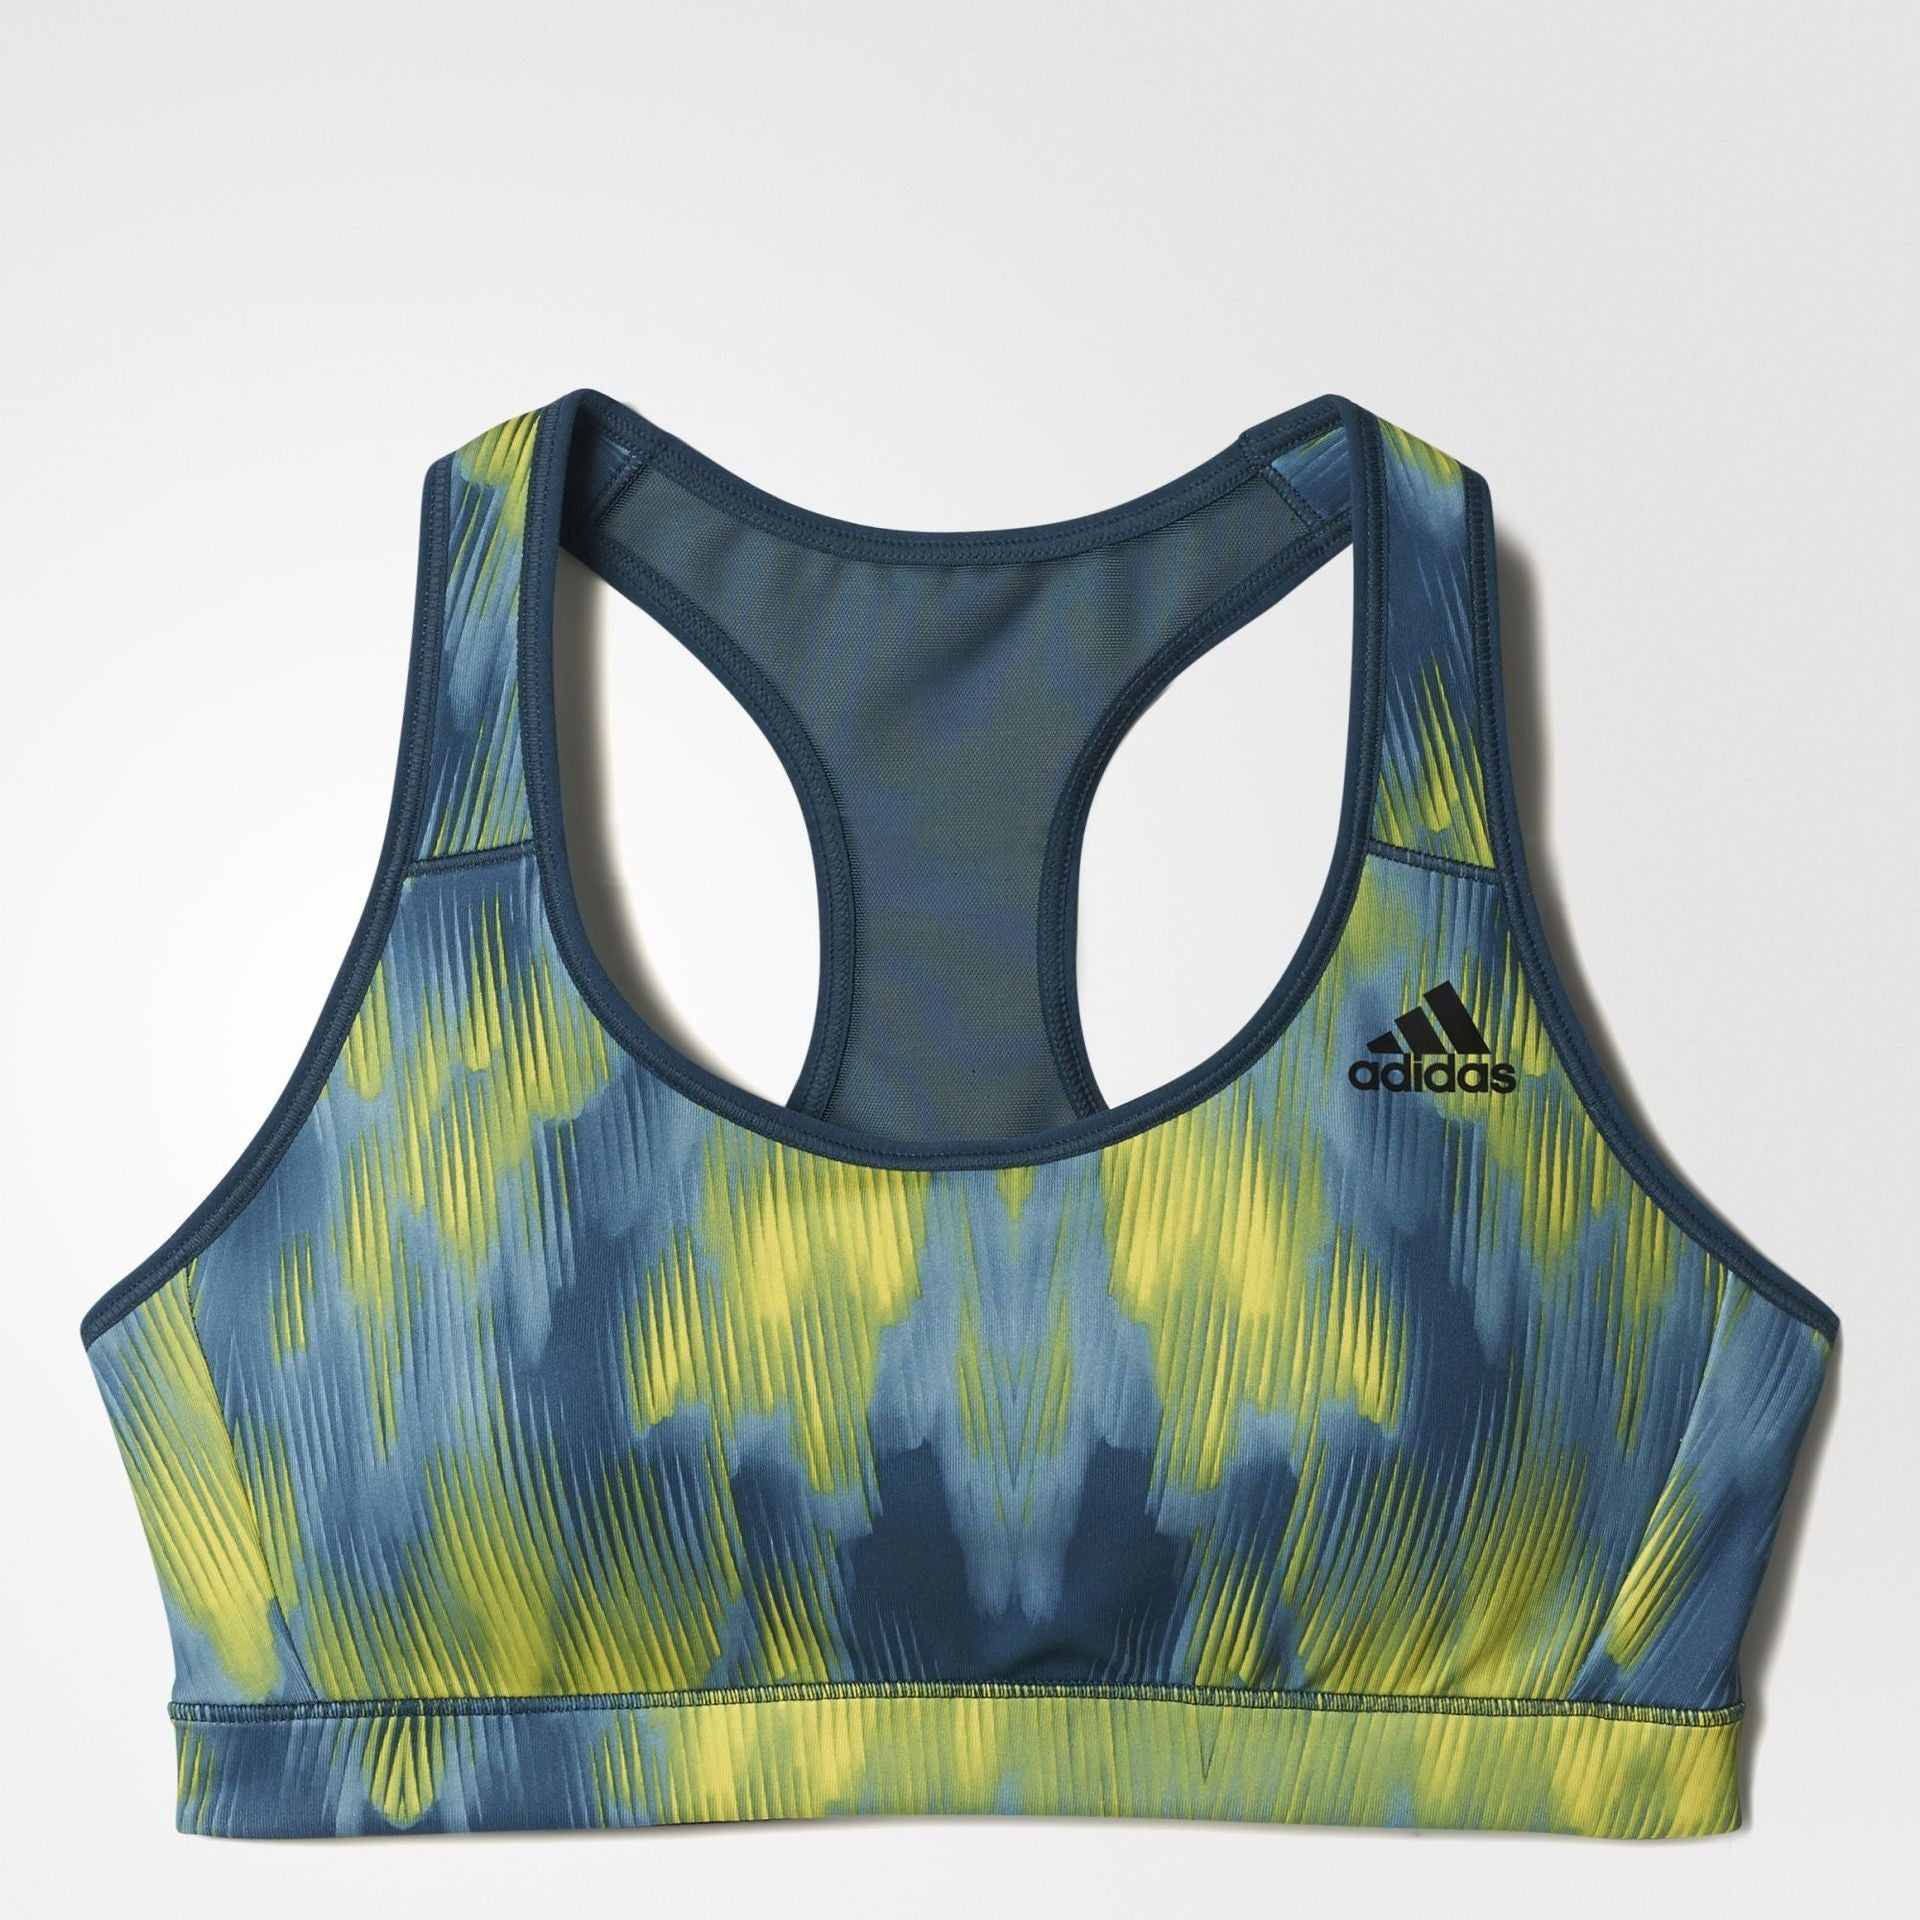 adidas climacool high support sports bra nz